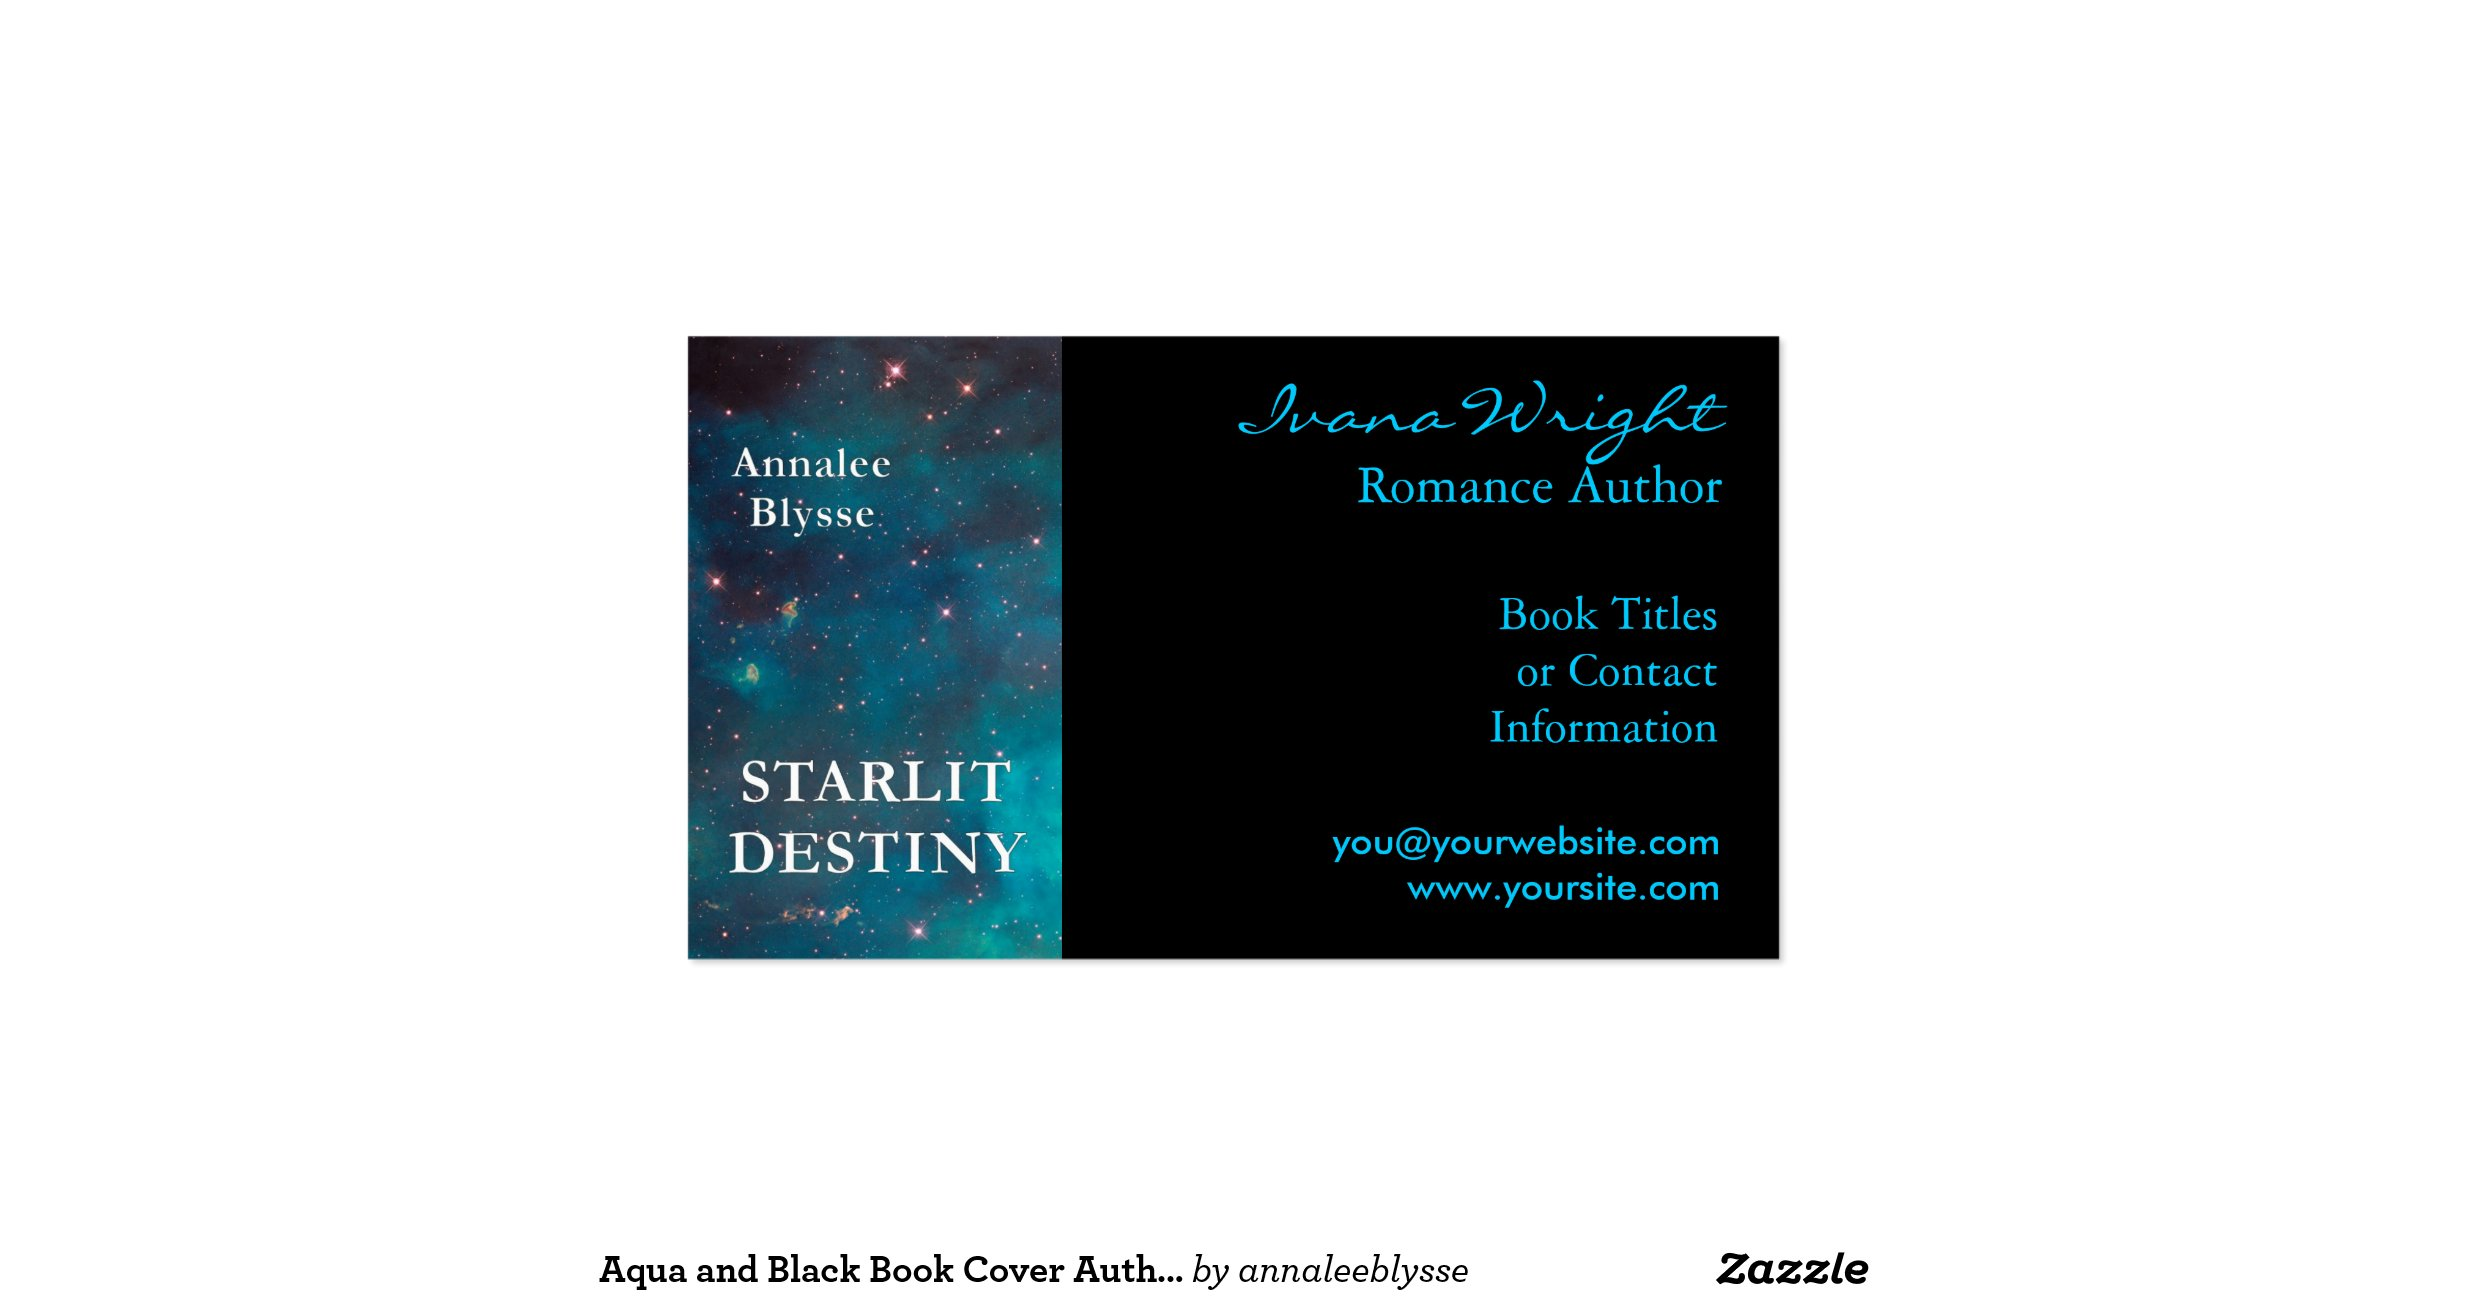 Book Cover Business Cards : Book cover author business card